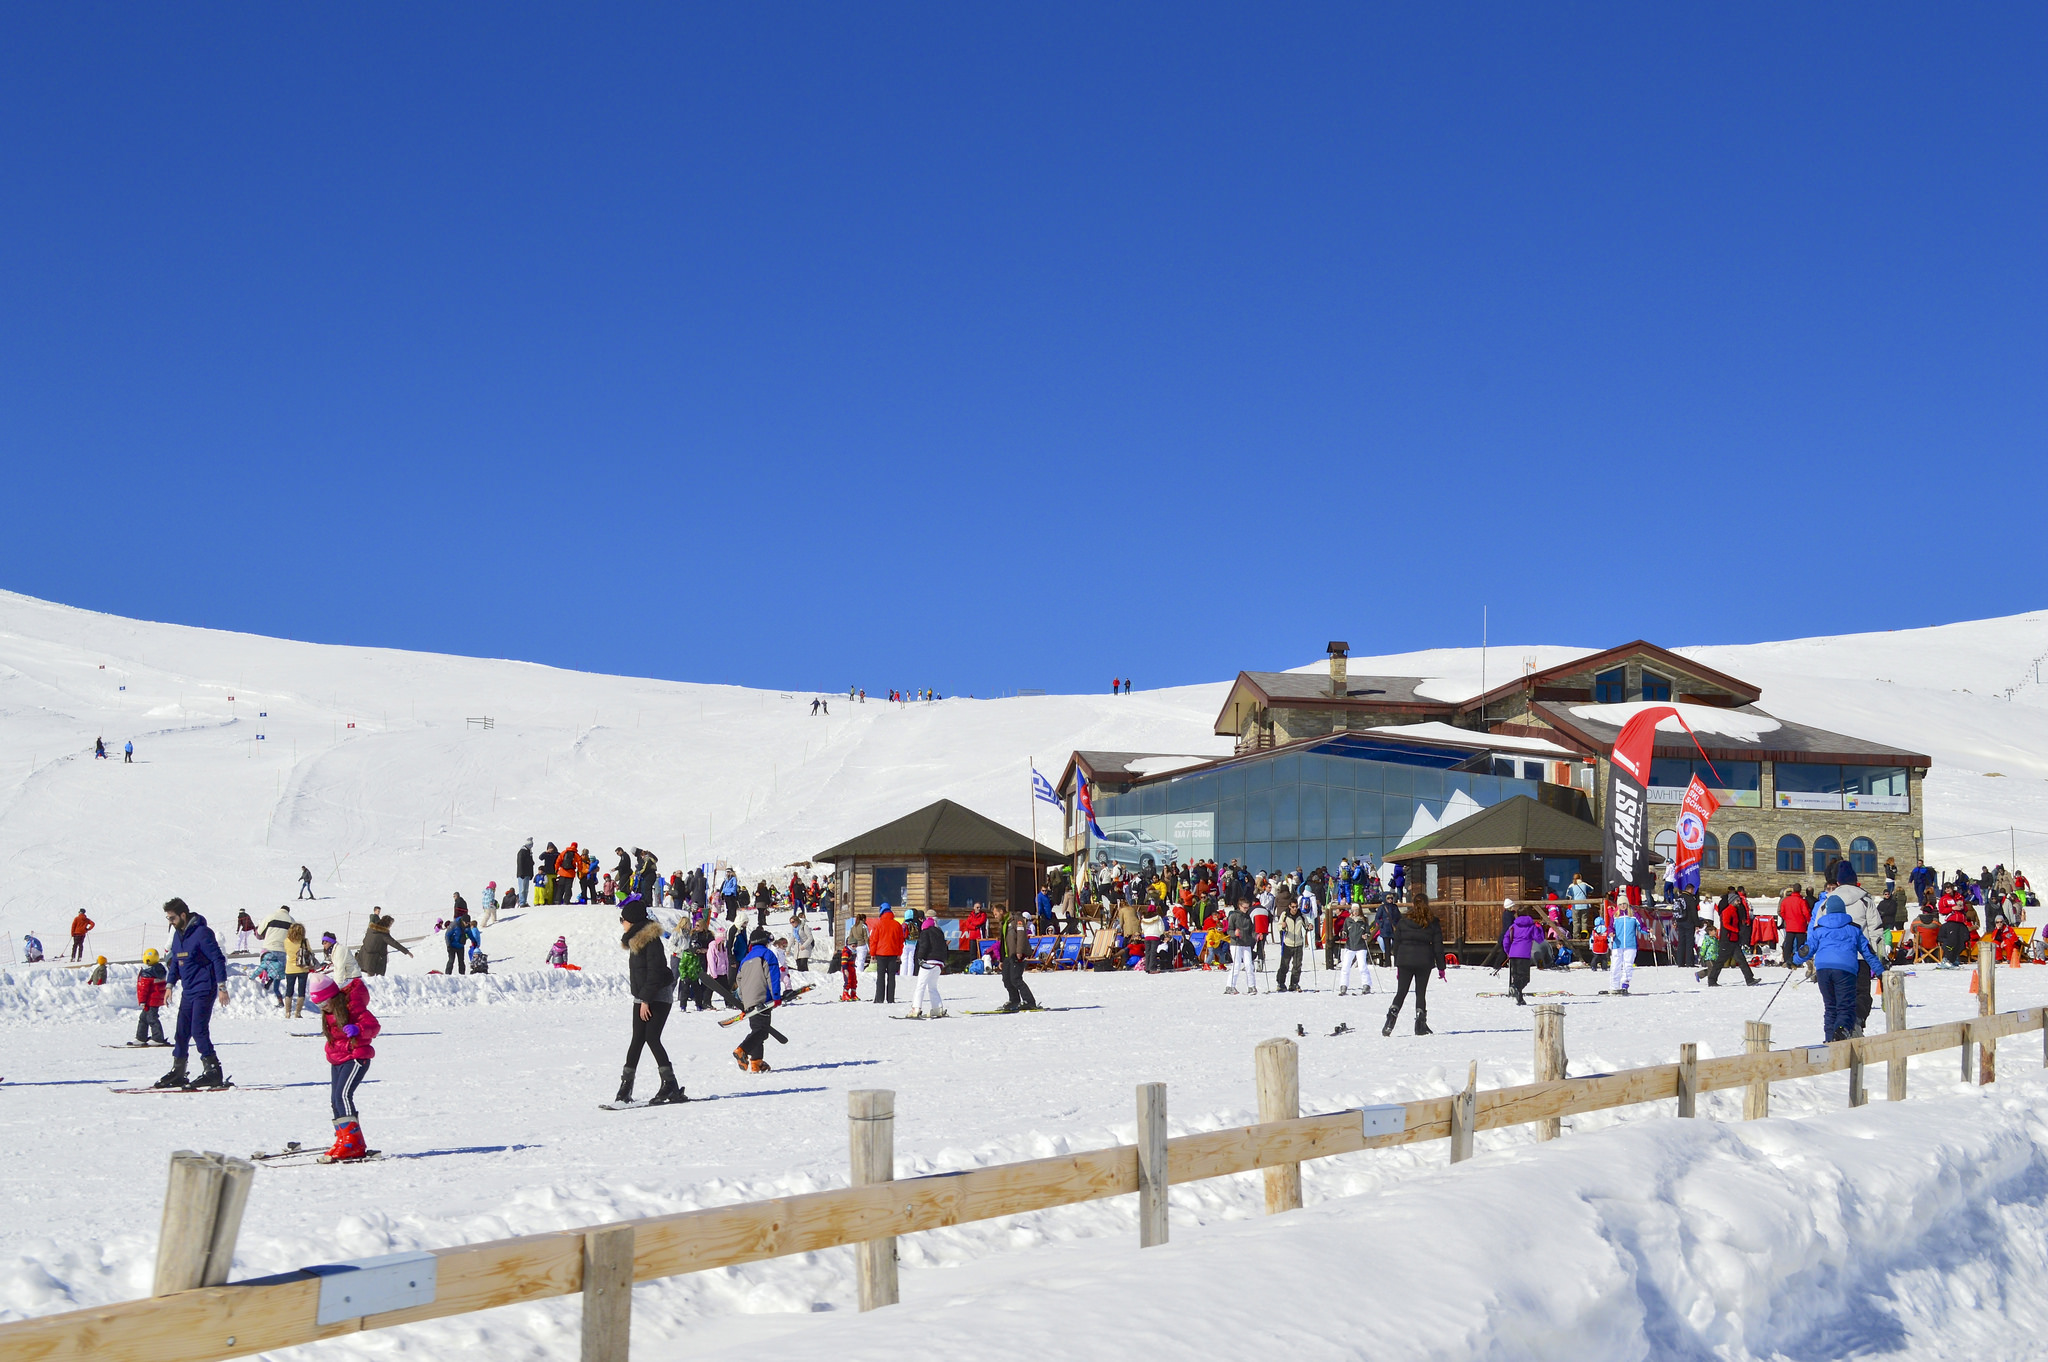 ski lodge in winter - photo #39